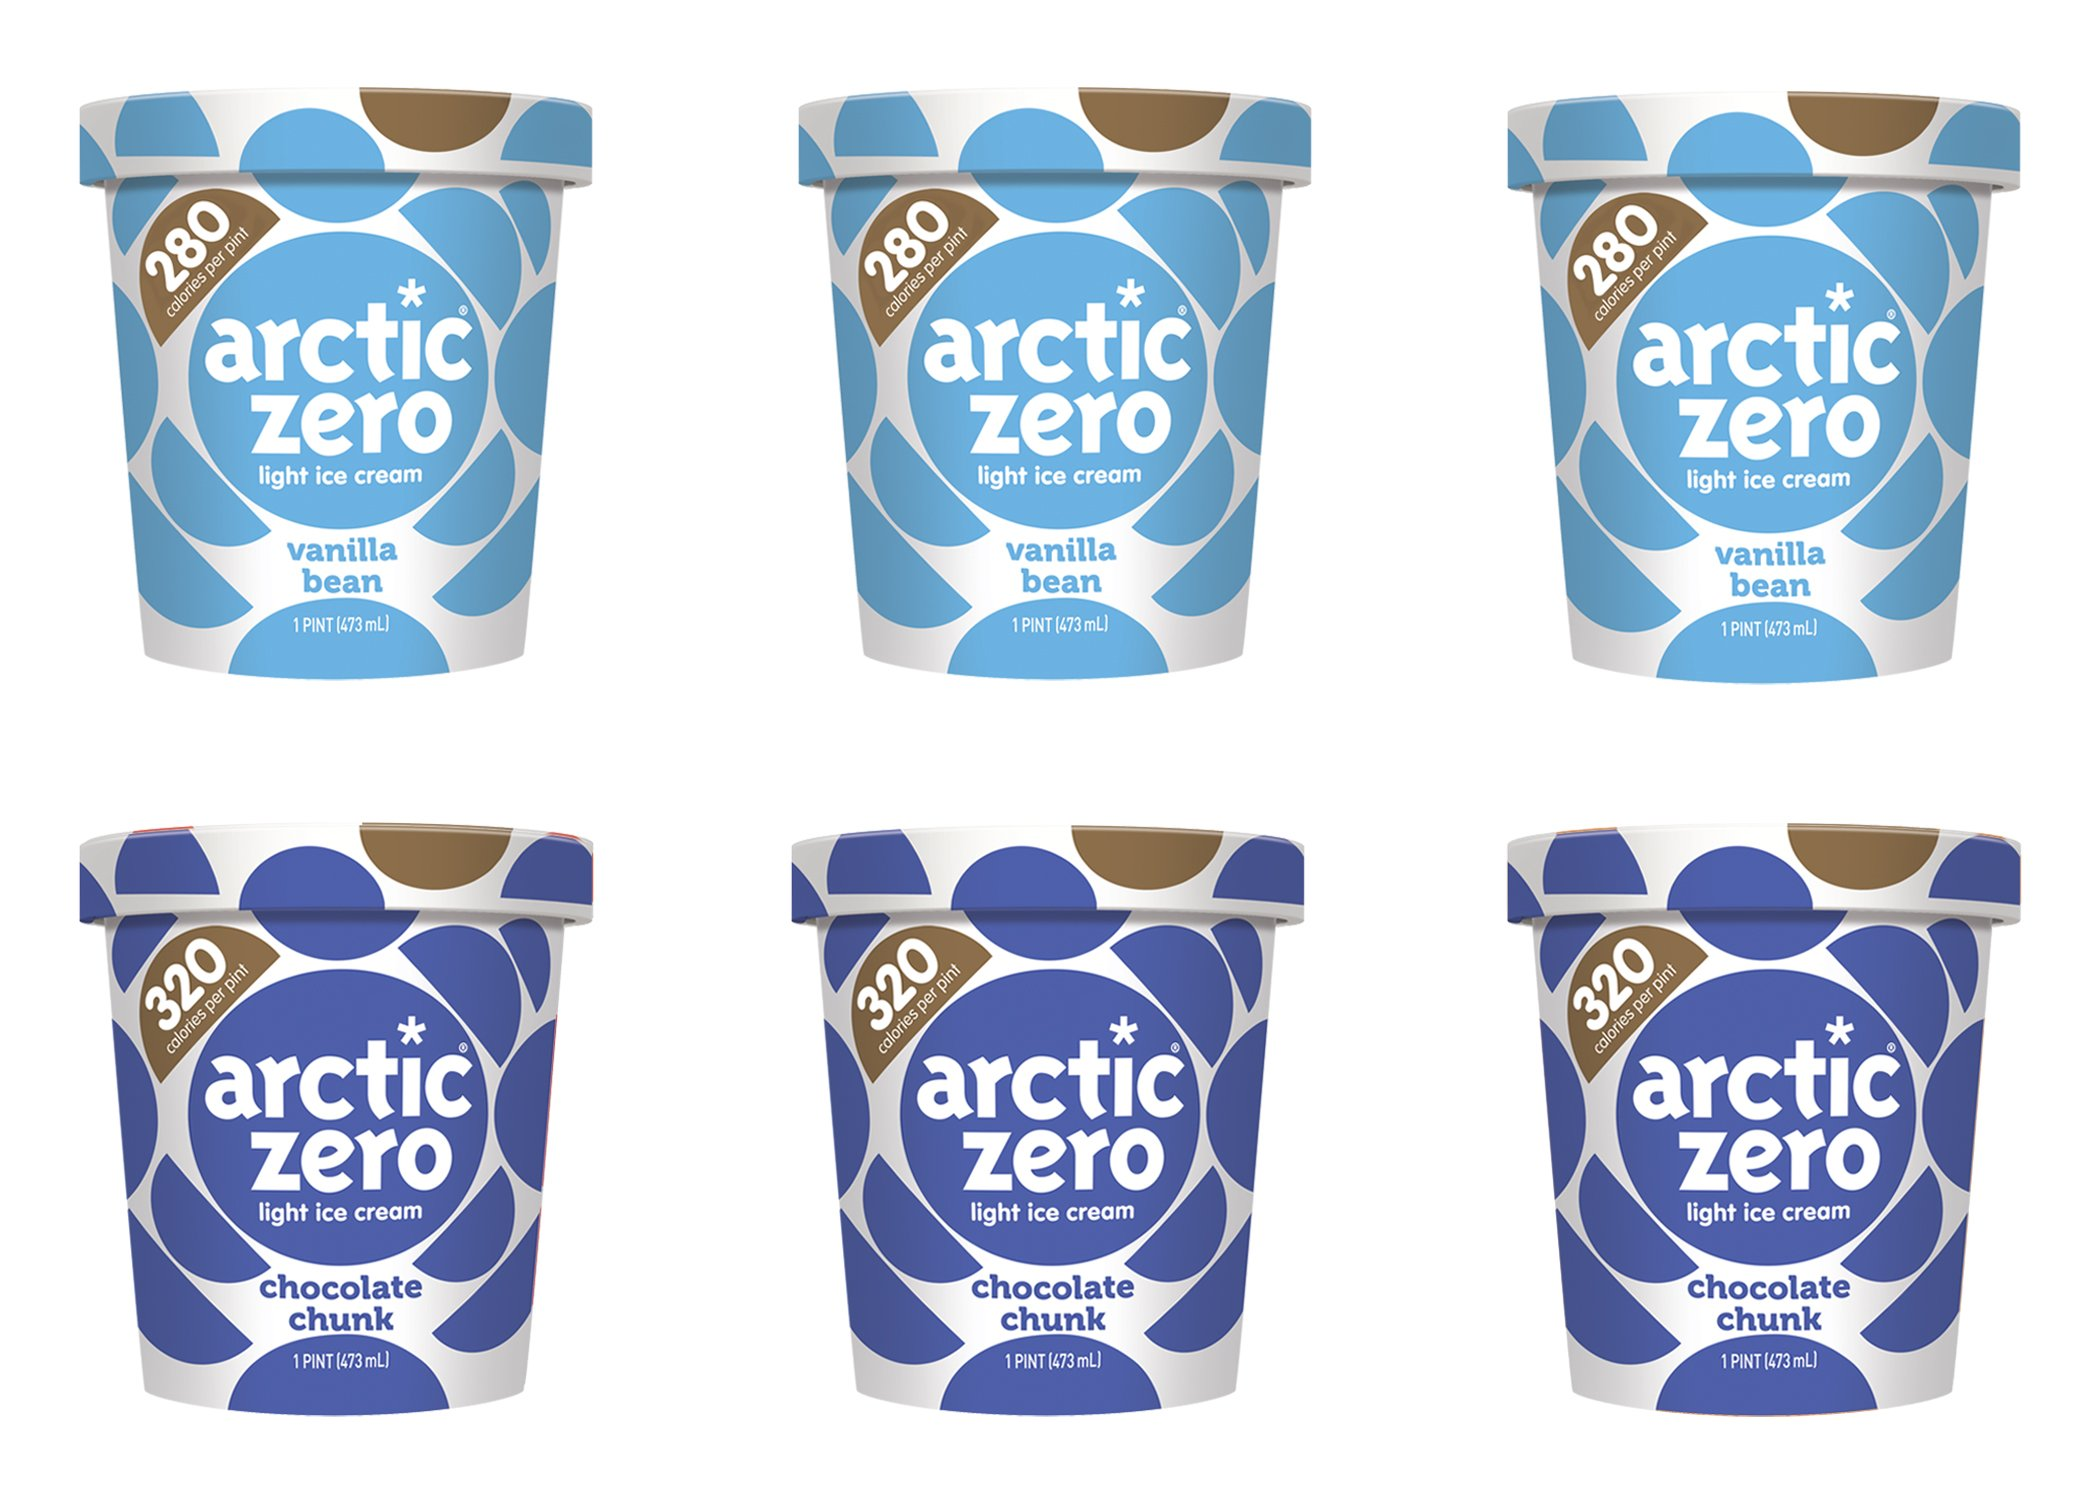 Arctic Zero Vanilla Bean and Chocolate Chunk Bakery and Dessert Gifts, 16 Fluid Ounce (pack Of 6)